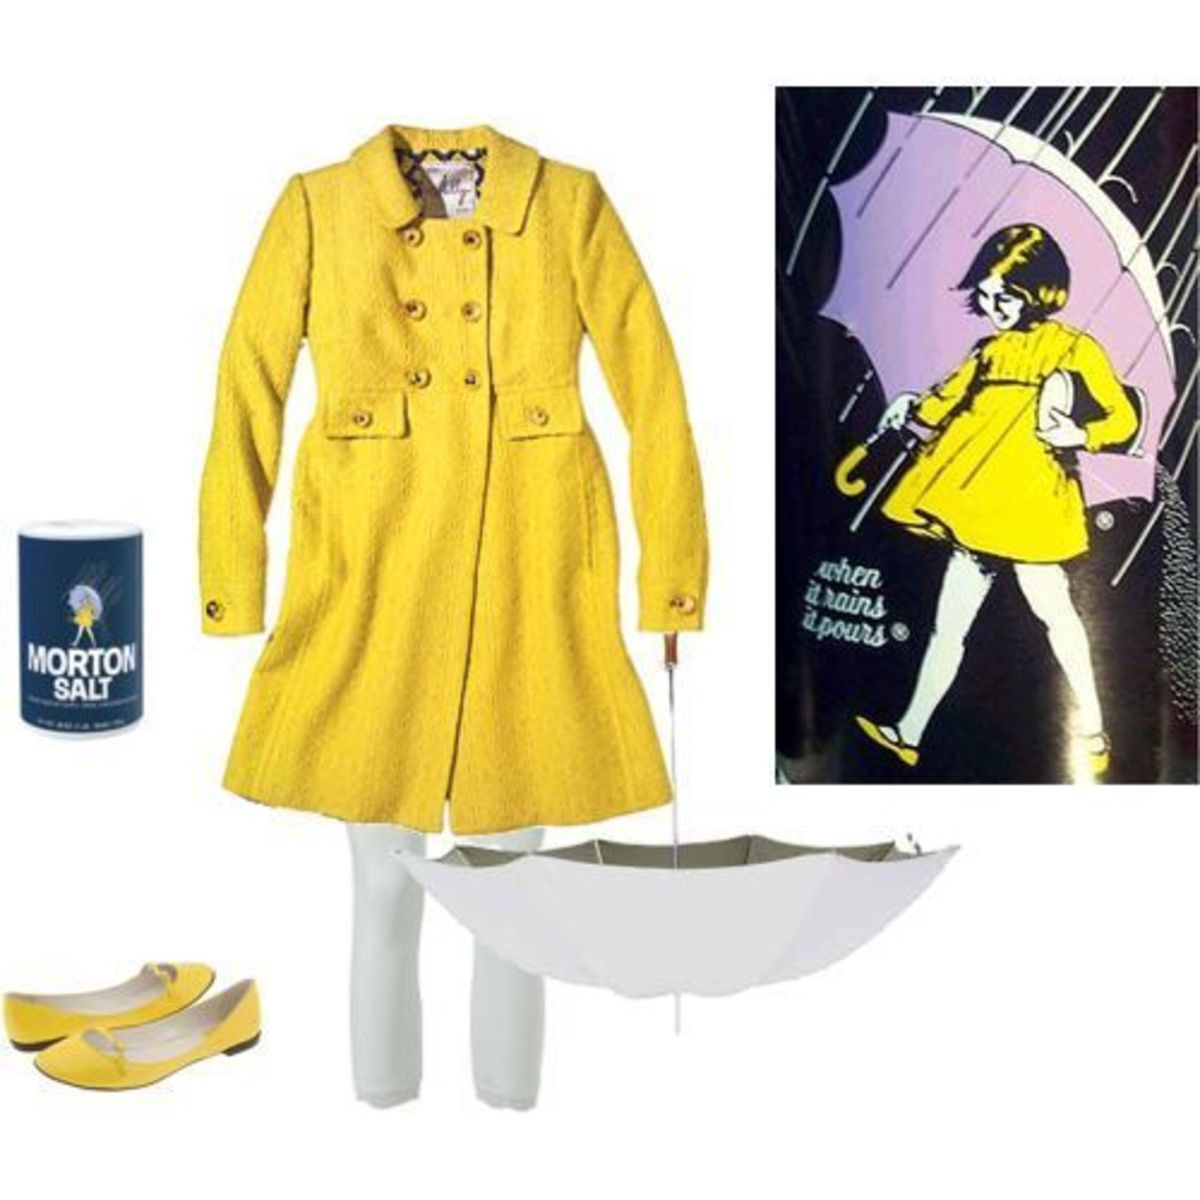 The Morton Salt Girl | DIY Halloween Costume Ideas